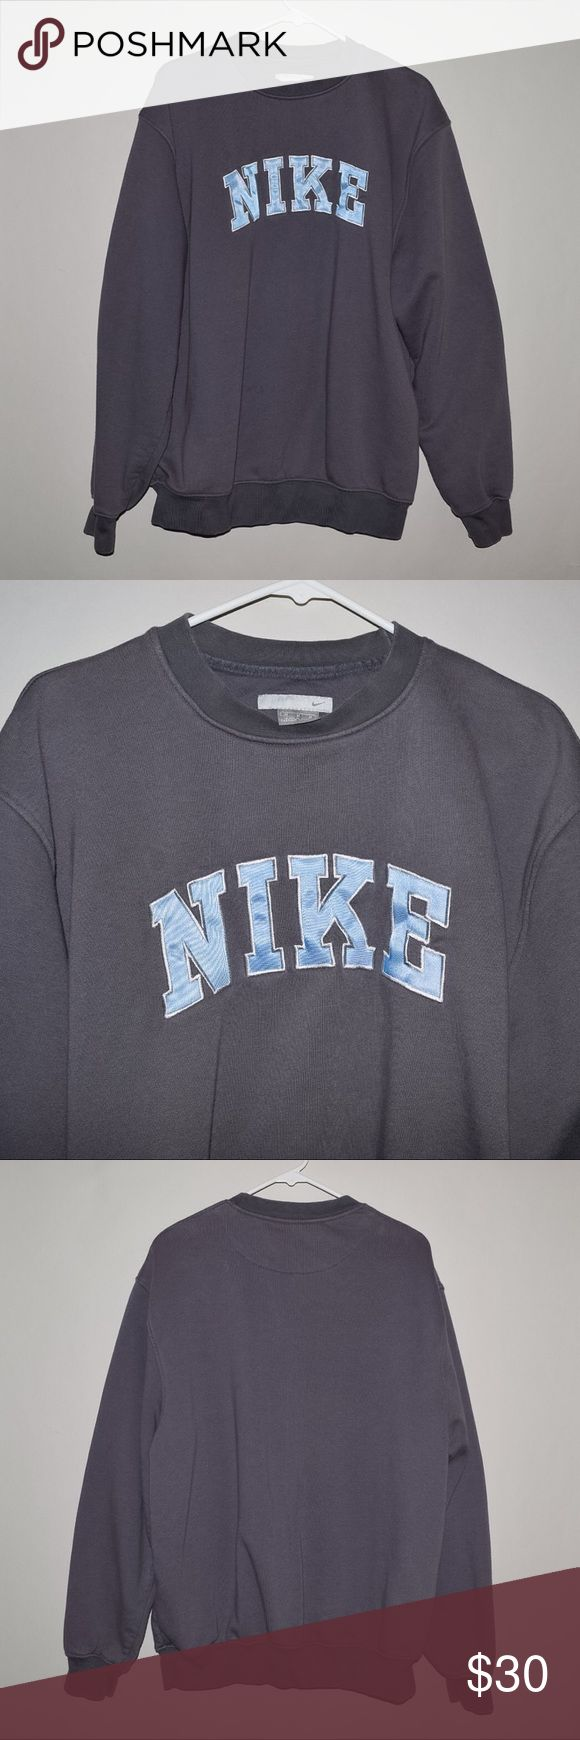 Rare Vintage Nike Spwll Out Crewneck Sweater Brand: Vintage Nike Item name: Spell Out Men's Crewneck Sweater  		 Color: Grey / Blue Condition: This is a pre-owned item. It  is in excellent used condition with no stains, rips, holes, etc. Comes from a smoke free household. Size: Medium Measurements:  Pit to Pit - 23 inches Shoulder to bottom - 29 inches Nike Sweaters Crewneck